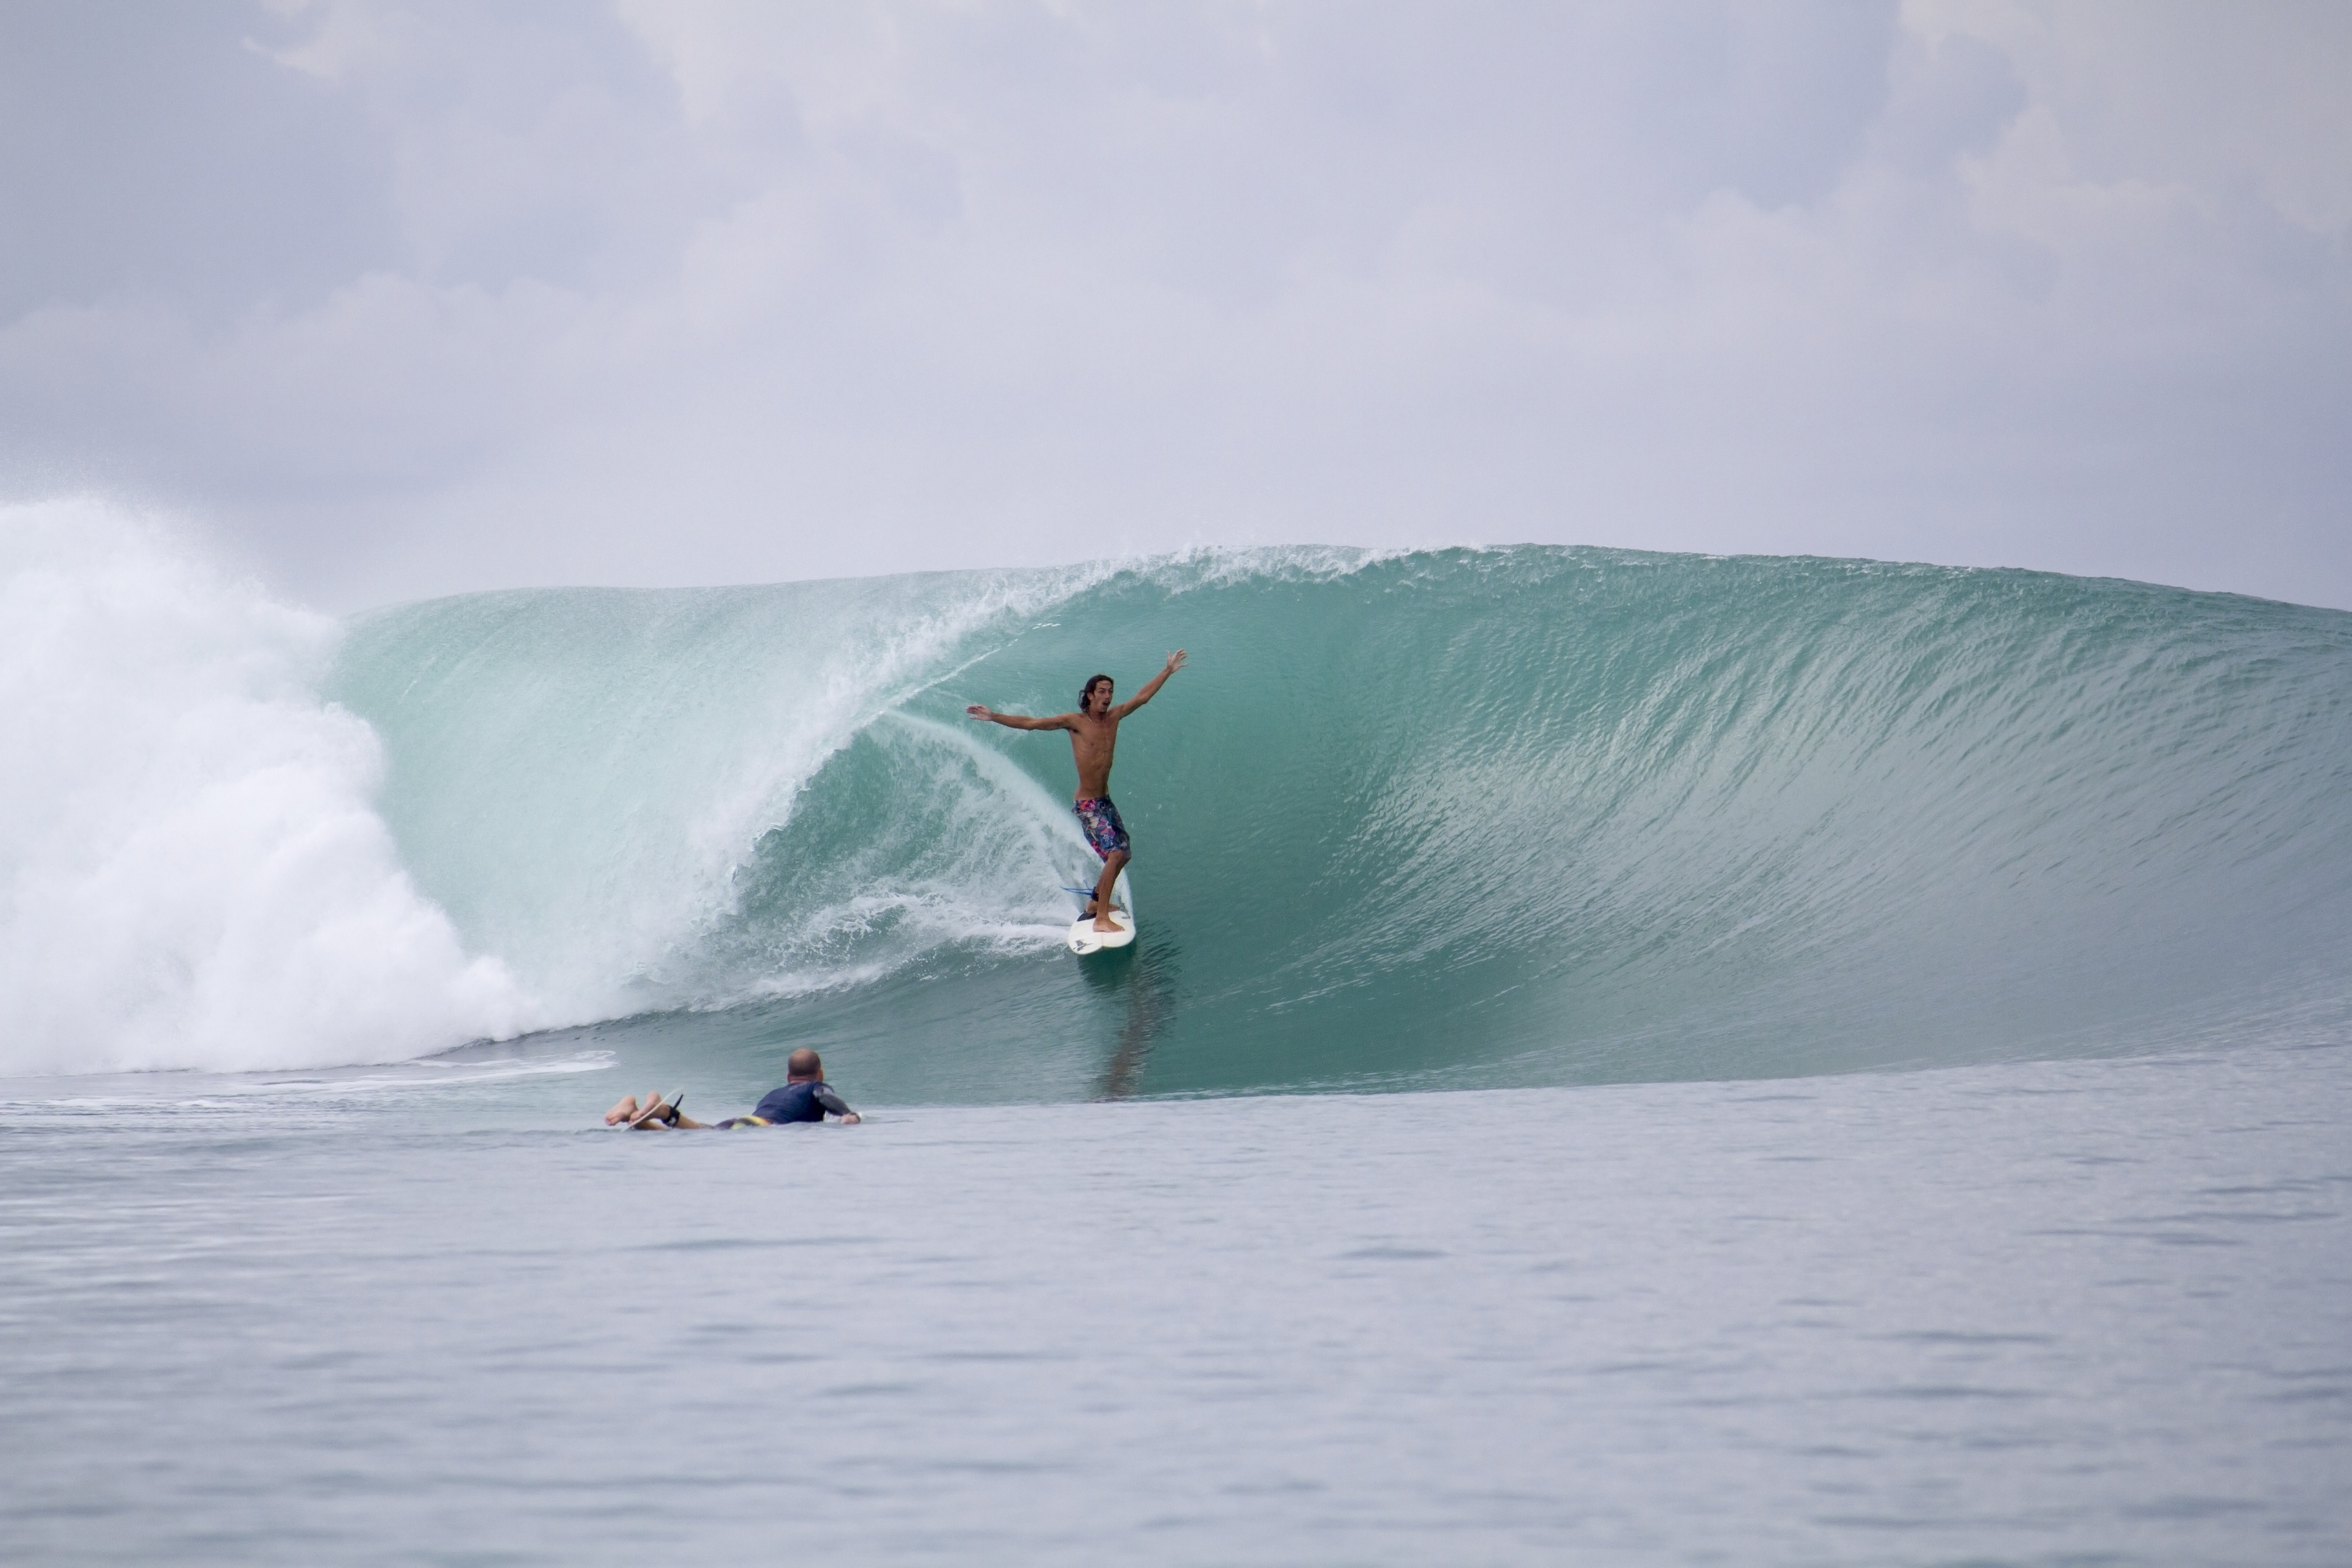 Surfer gets barrelled in Indonesia